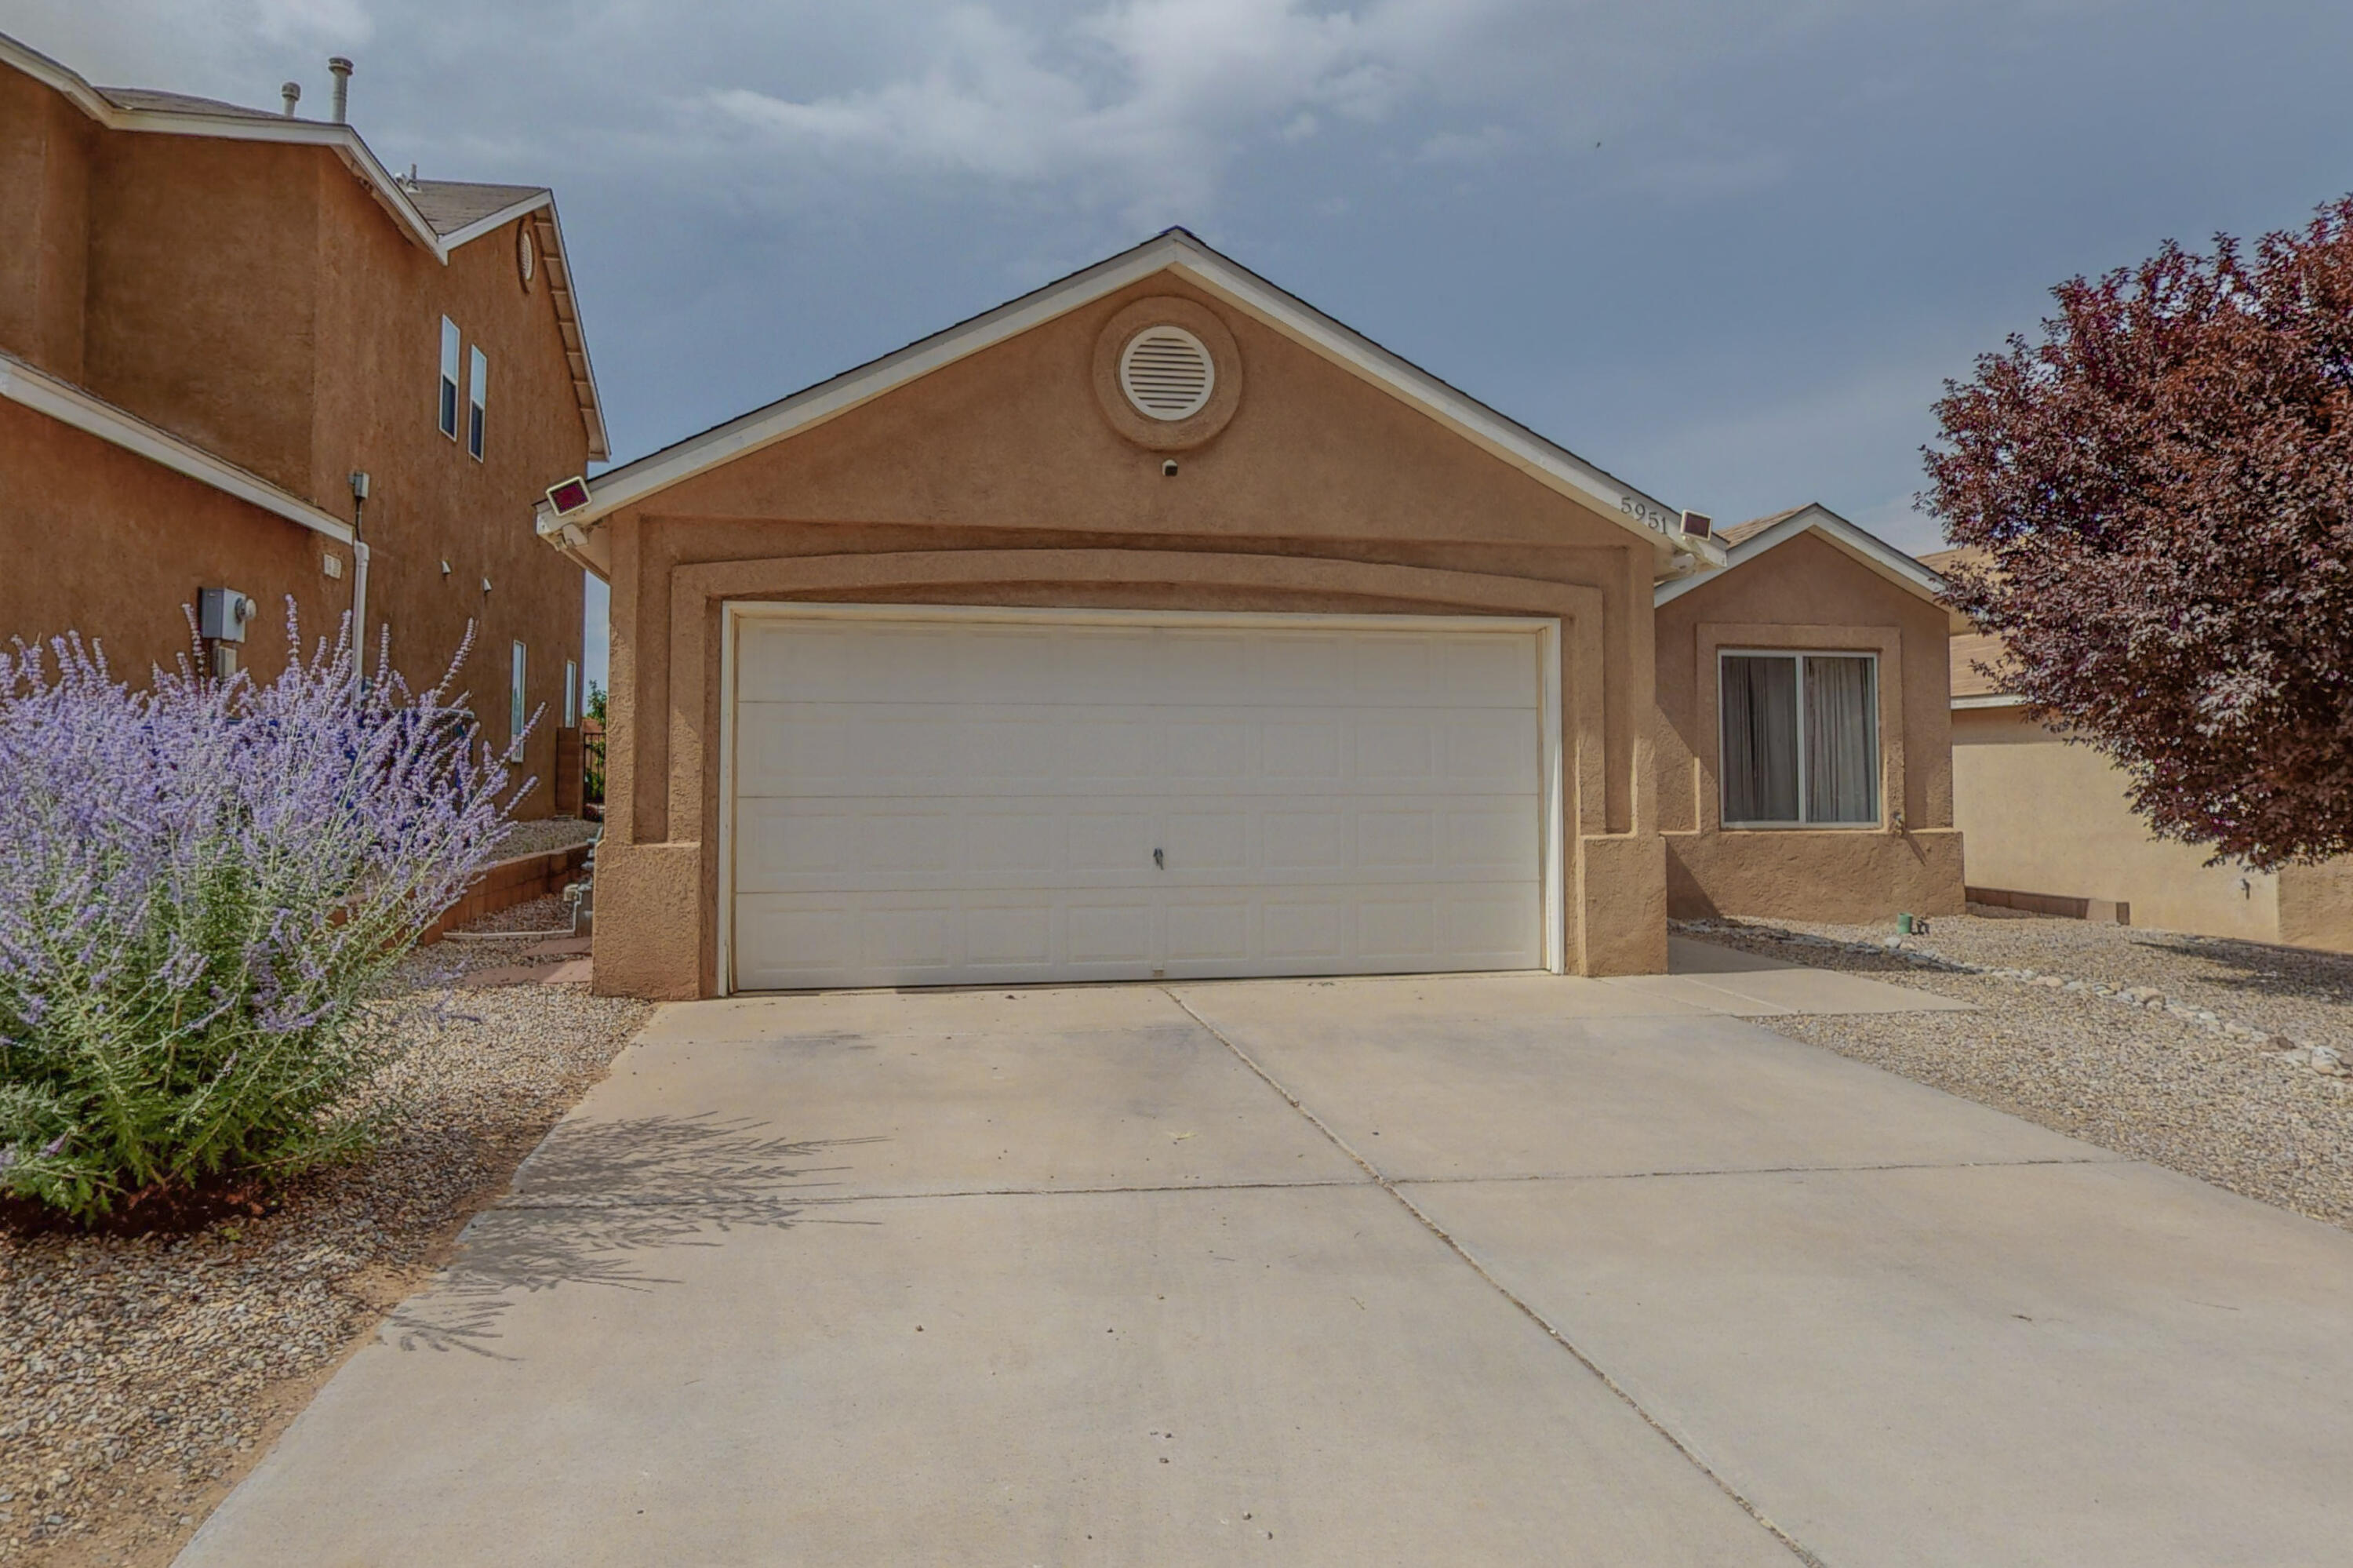 This lovely home located in the Los Suenos subdivision of Albuquerque's Northwest Heights!  Entering this large 3 bedroom home through the front door, you are greeted with a huge, open living area to the right.  Off of the living area in the front of the home through the french doors is the home office or bonus room.  From the front door to the left, you will find the access to the garage and the 2 bedroom, 1 full bathroom private wing of the home.   Going back through the living room towards the back of the home, you will find the large kitchen and dining area complete with all appliances and sliding glass doors to the backyard and covered patio.  Before you get to the kitchen, to the left of the home you will find the master bedroom and en suite boasting custom tile shower and dual sinks